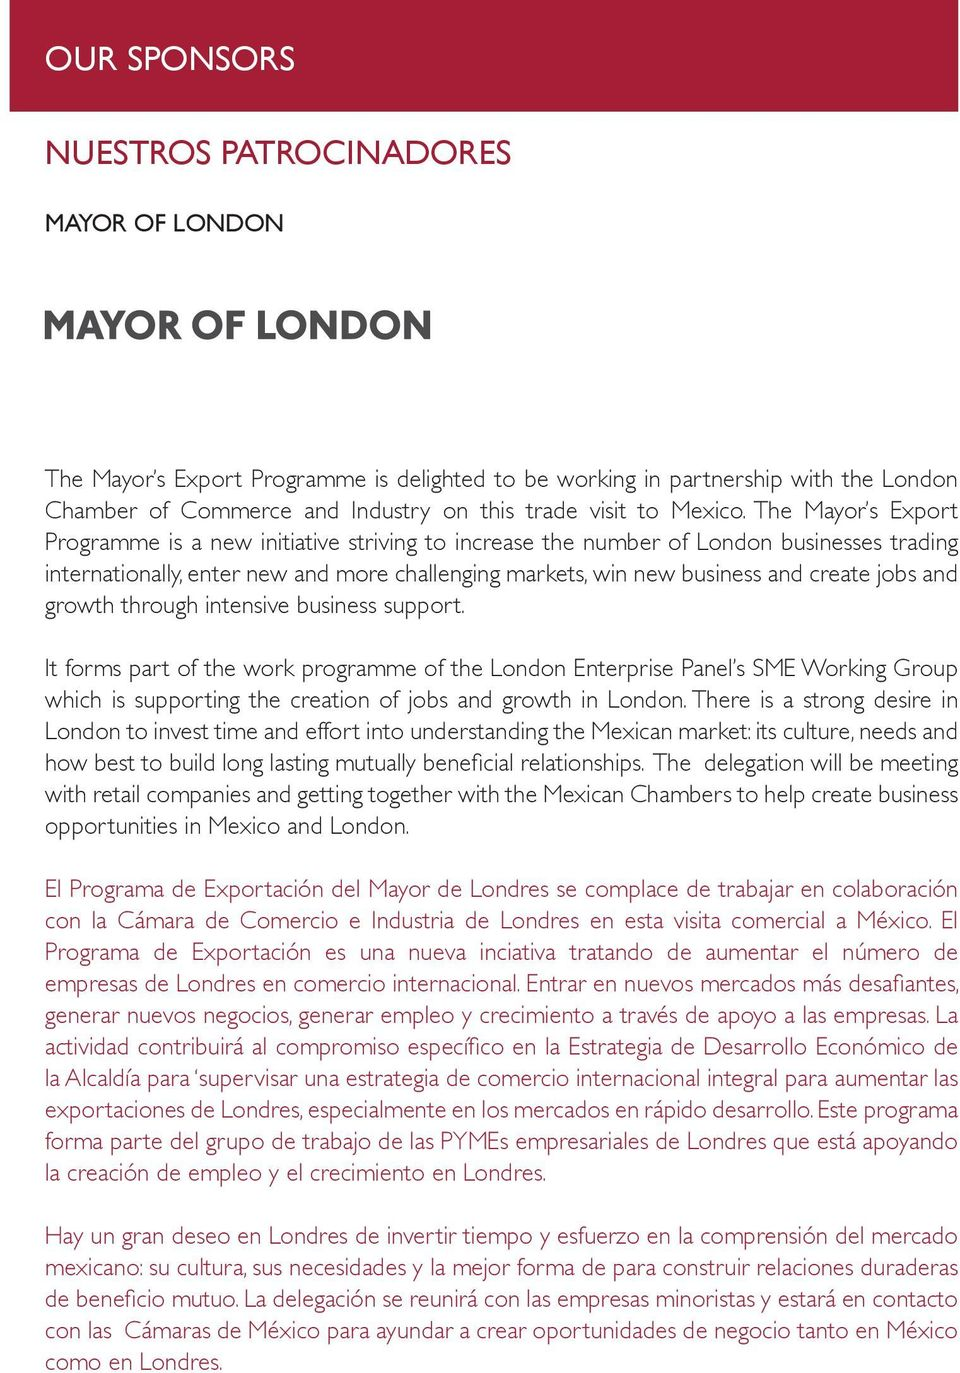 The Mayor s Export Programme is a new initiative striving to increase the number of London businesses trading internationally, enter new and more challenging markets, win new business and create jobs